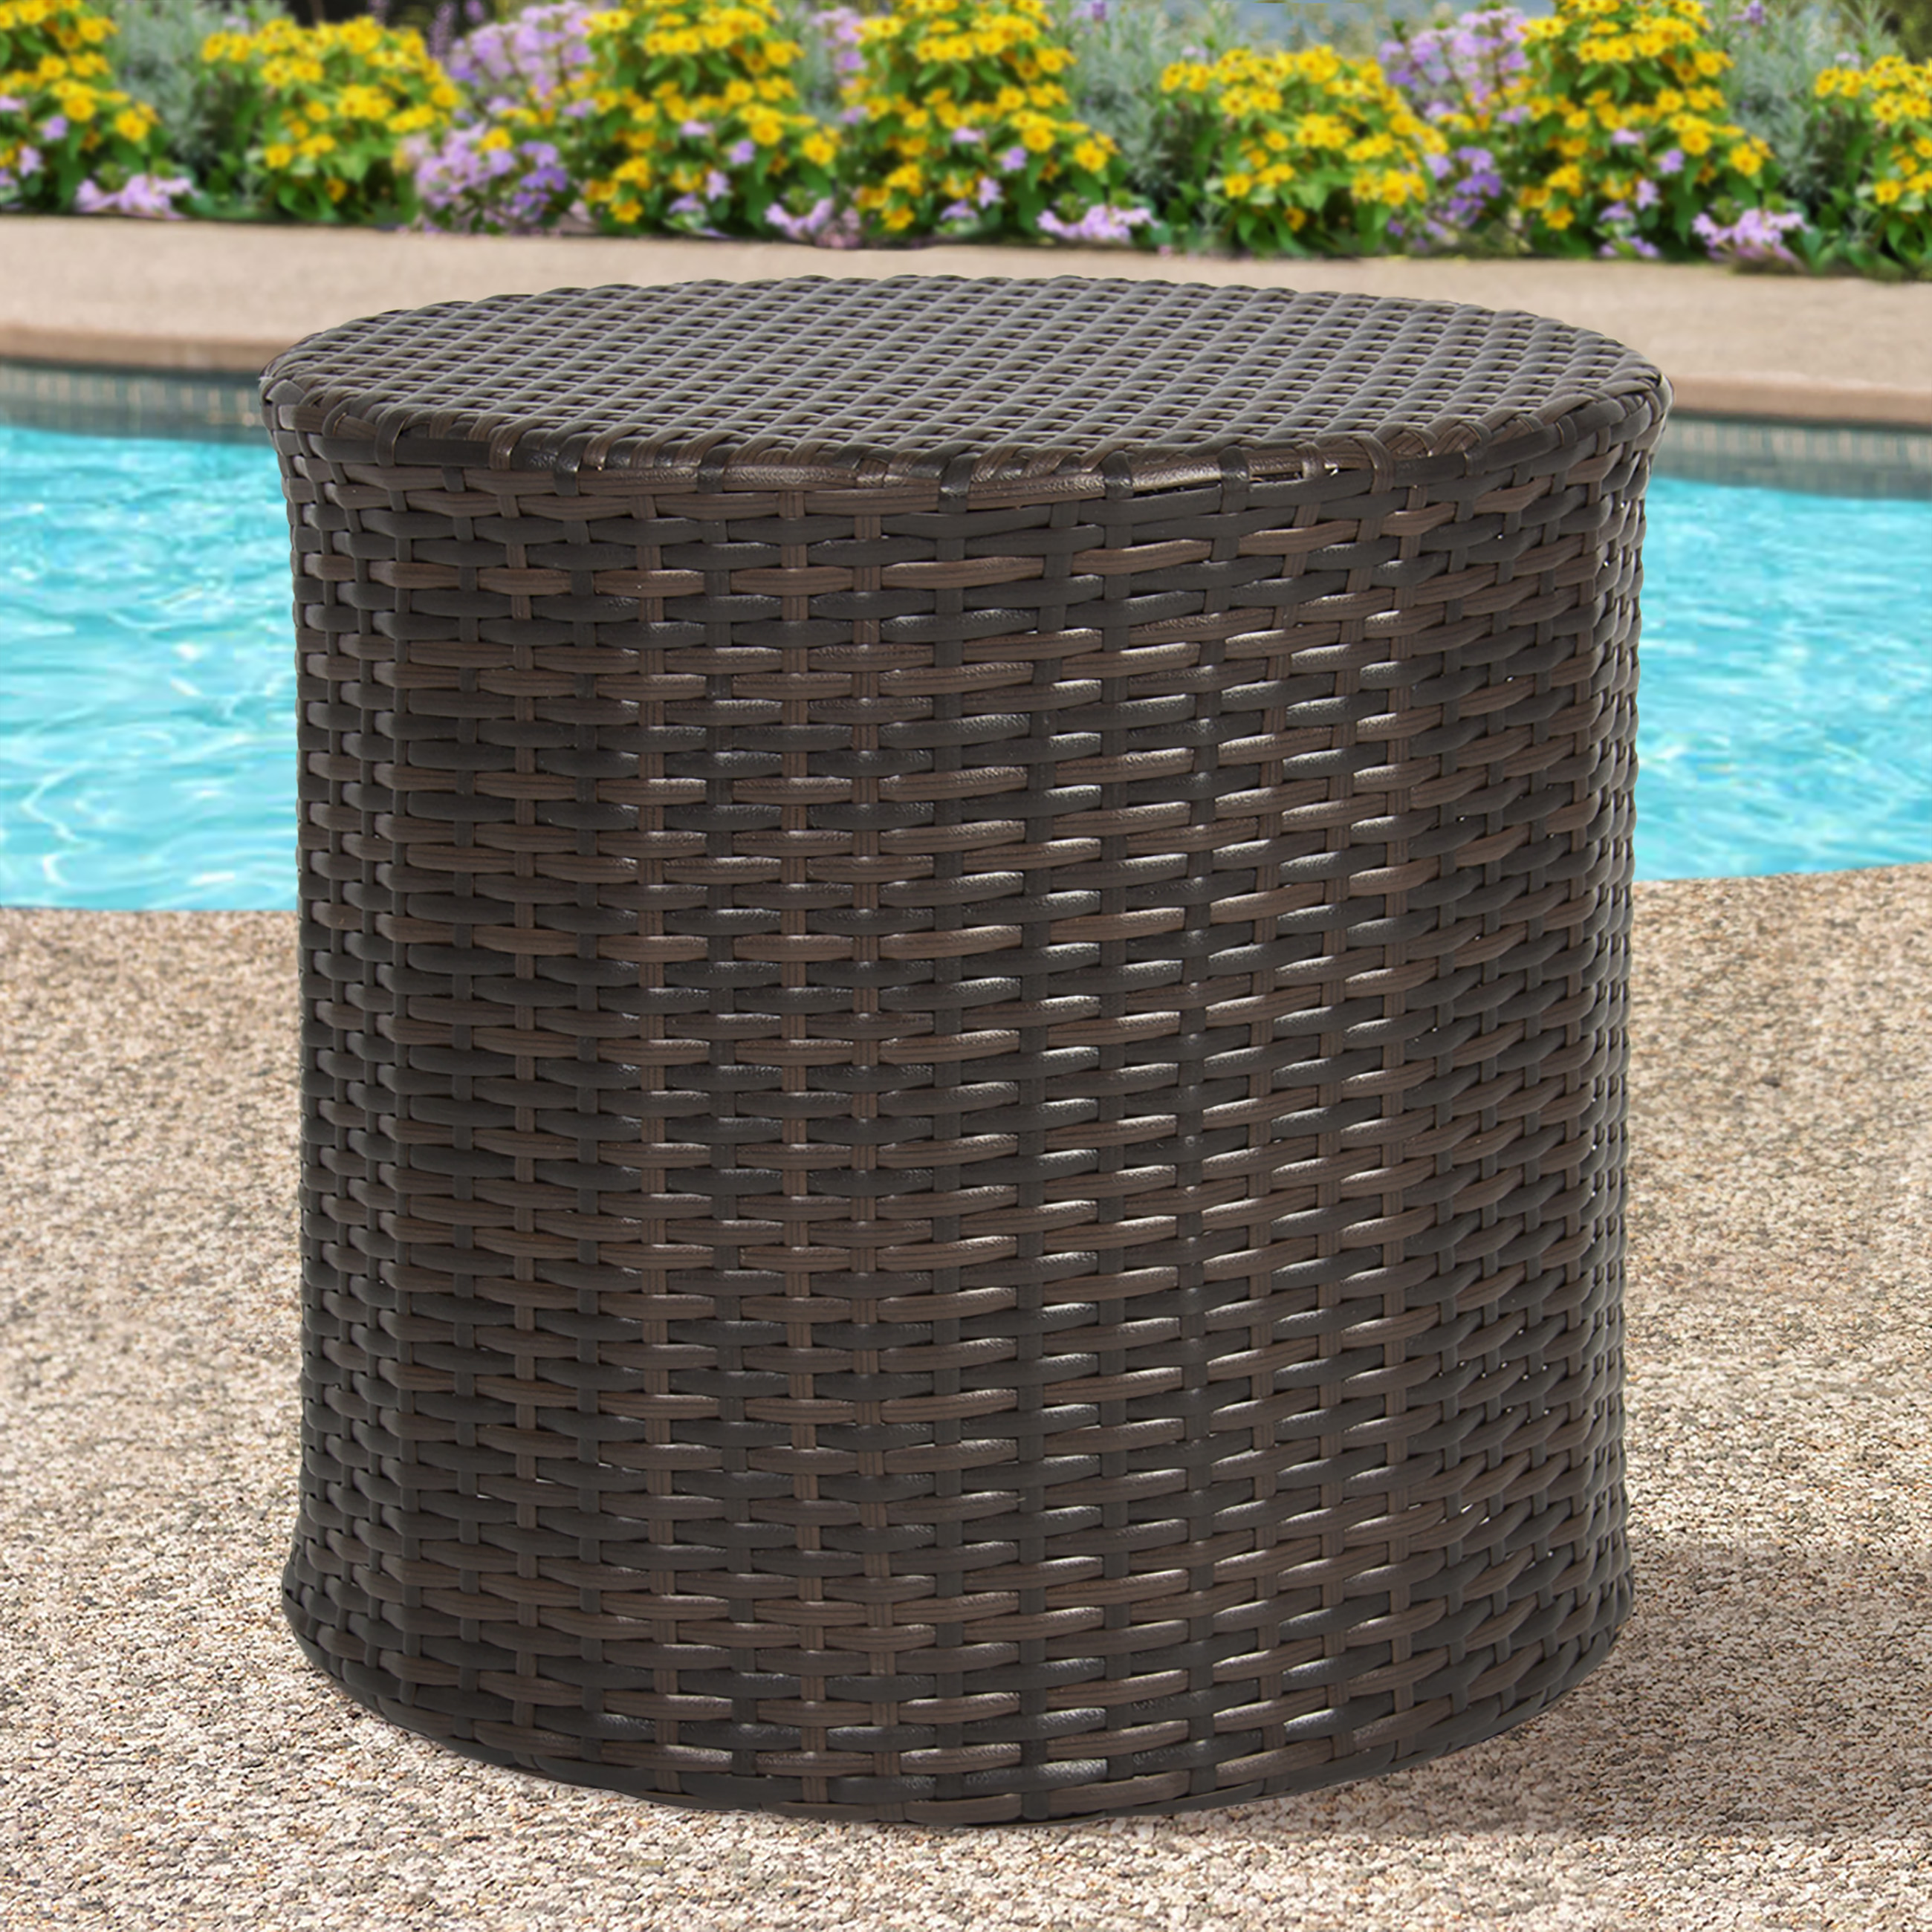 outdoor wicker rattan barrel side table patio furniture garden brown best choice products backyard pool ballard designs chair cushions kade accent night lamp luxury living room